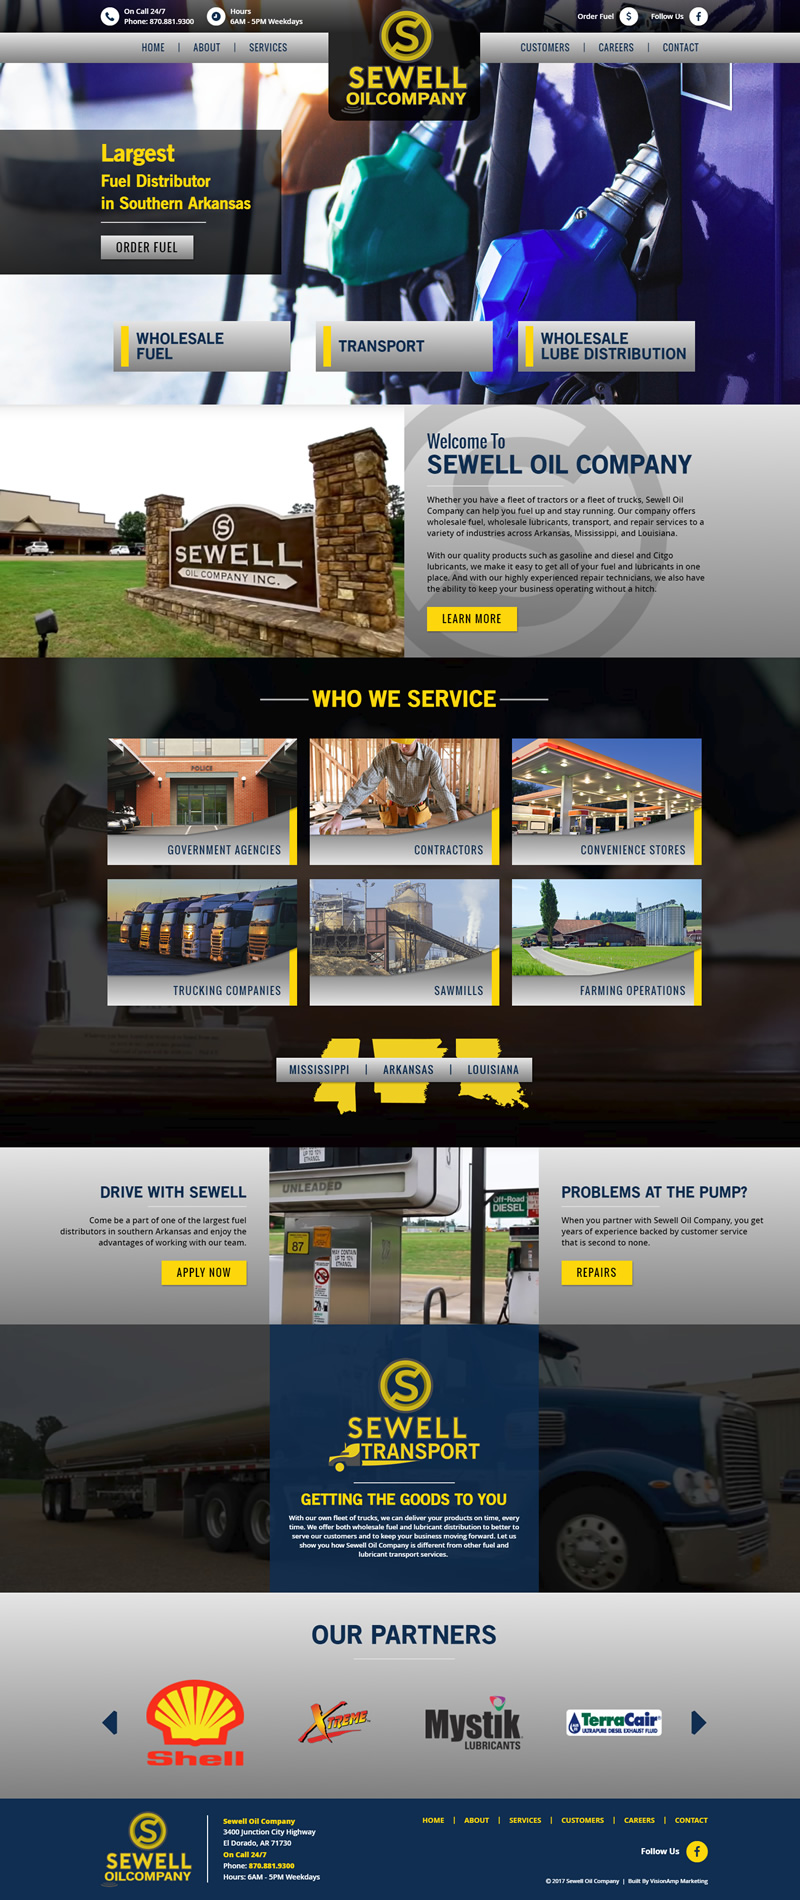 Sewell Oil Company Full Web Design Image